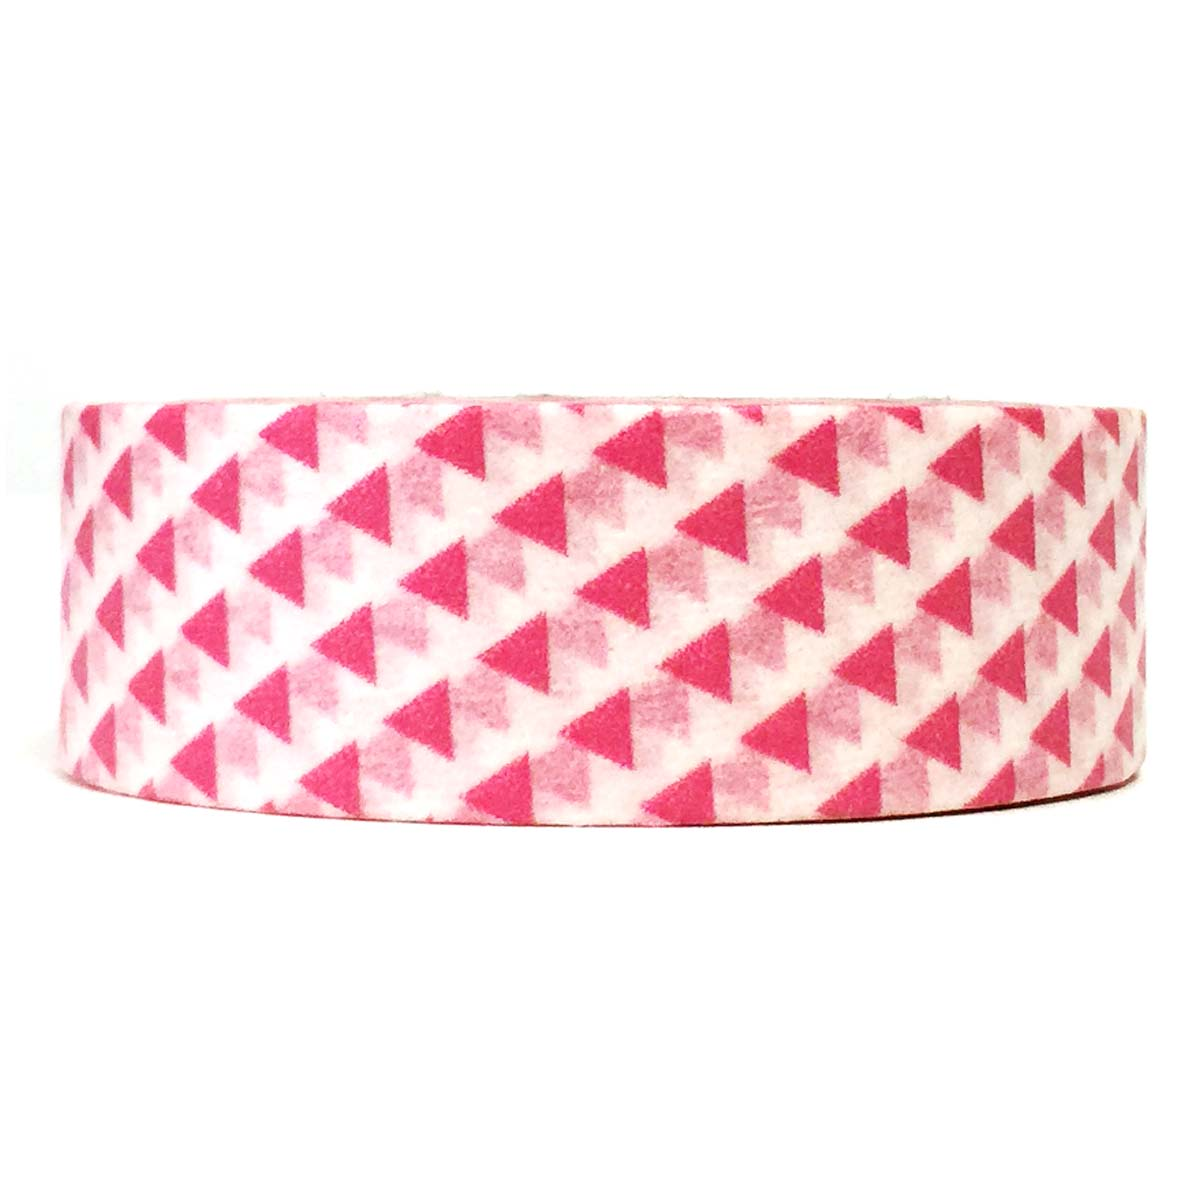 Wrapables Washi Masking Tape, Blissful Patterns Group